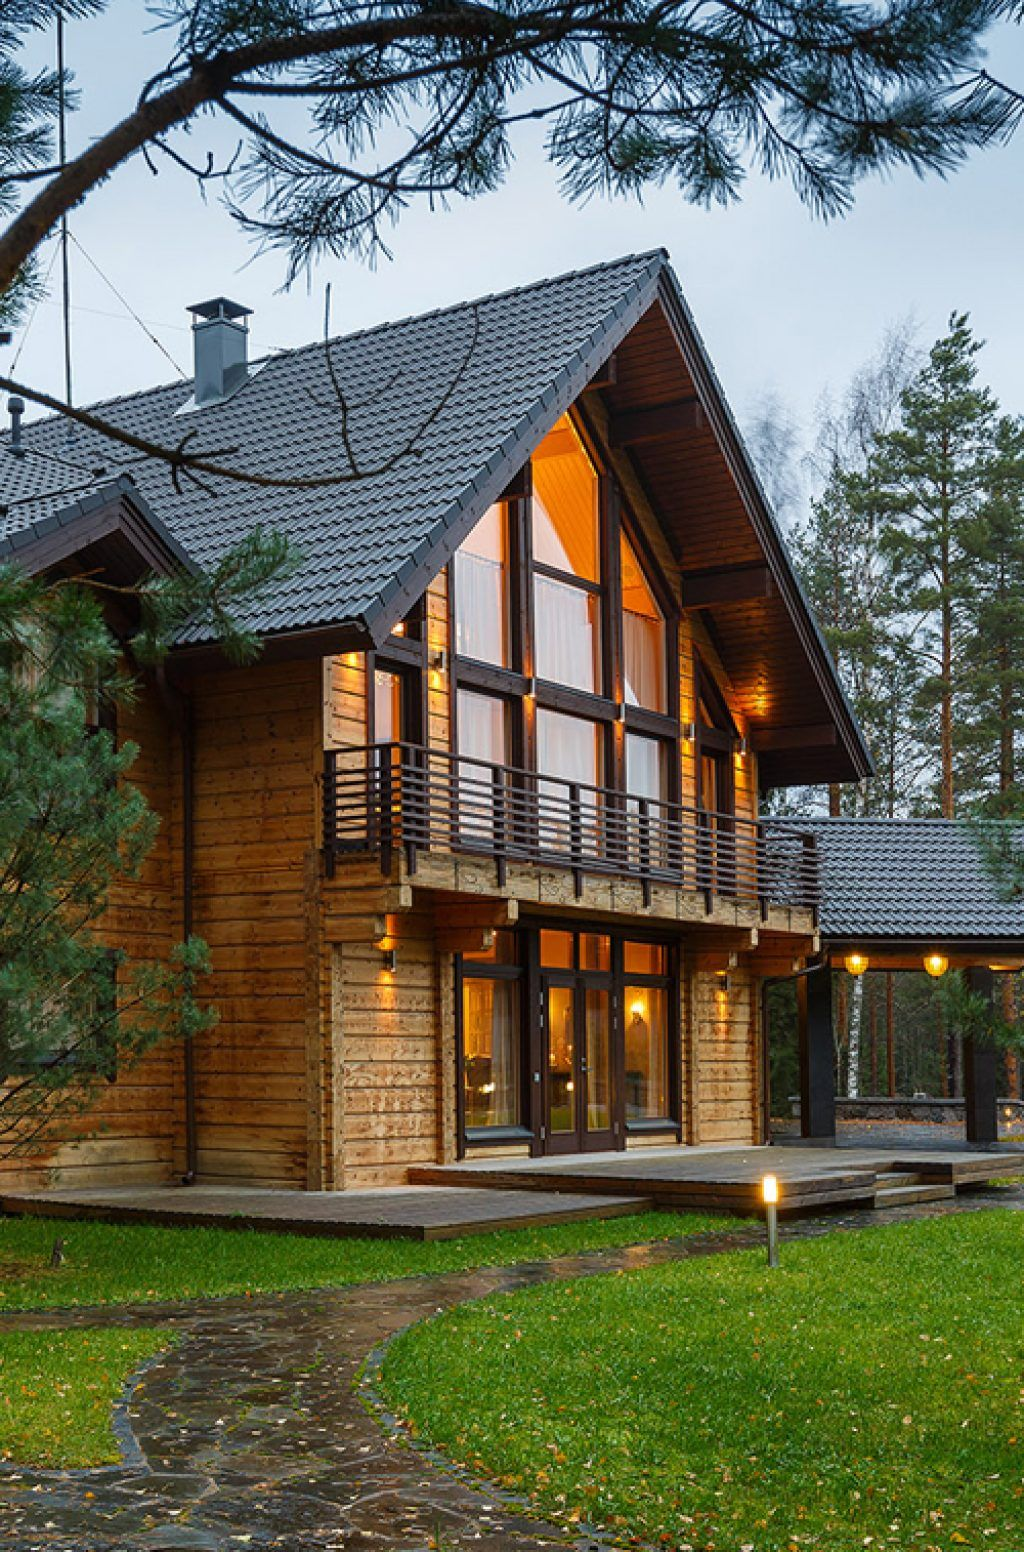 Classic Collection Traditional Scandinavian Style Log Homes For Quality Living Honka House Designs Exterior Log Homes Exterior Rustic Houses Exterior